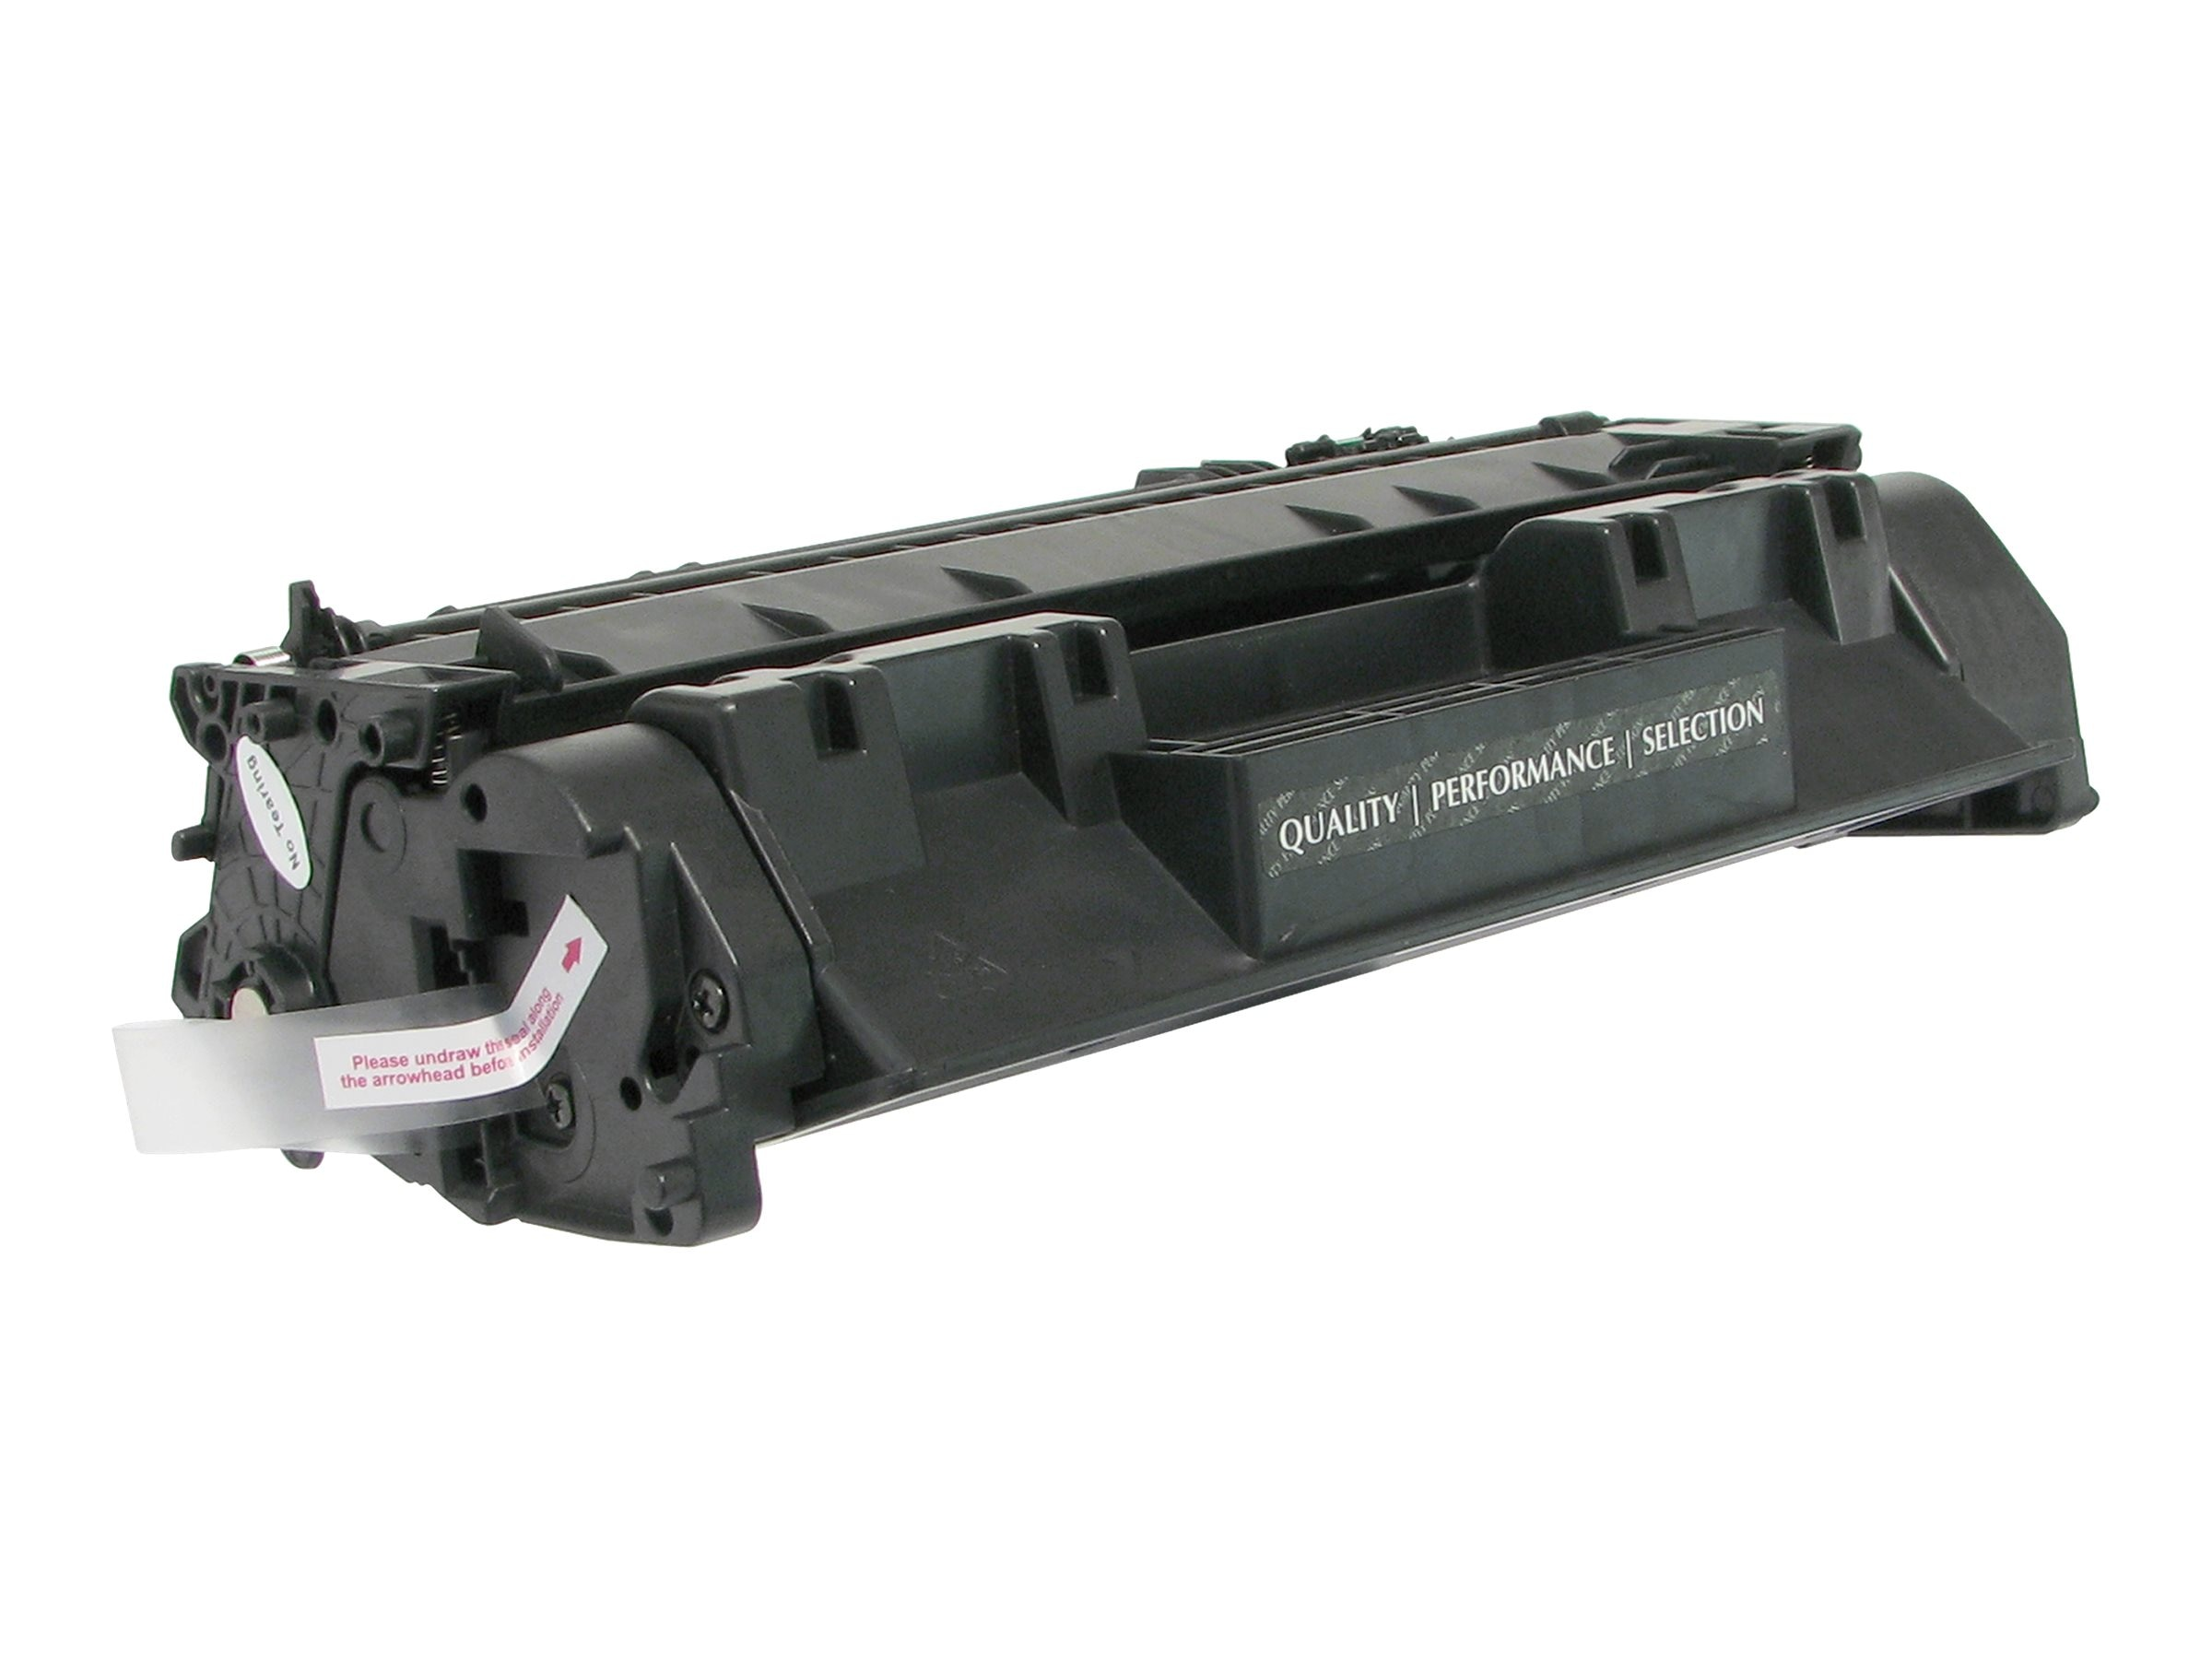 V7 CF280A Black Toner Cartridge for HP LaserJet Pro 400 M401 M425 Series, V780A